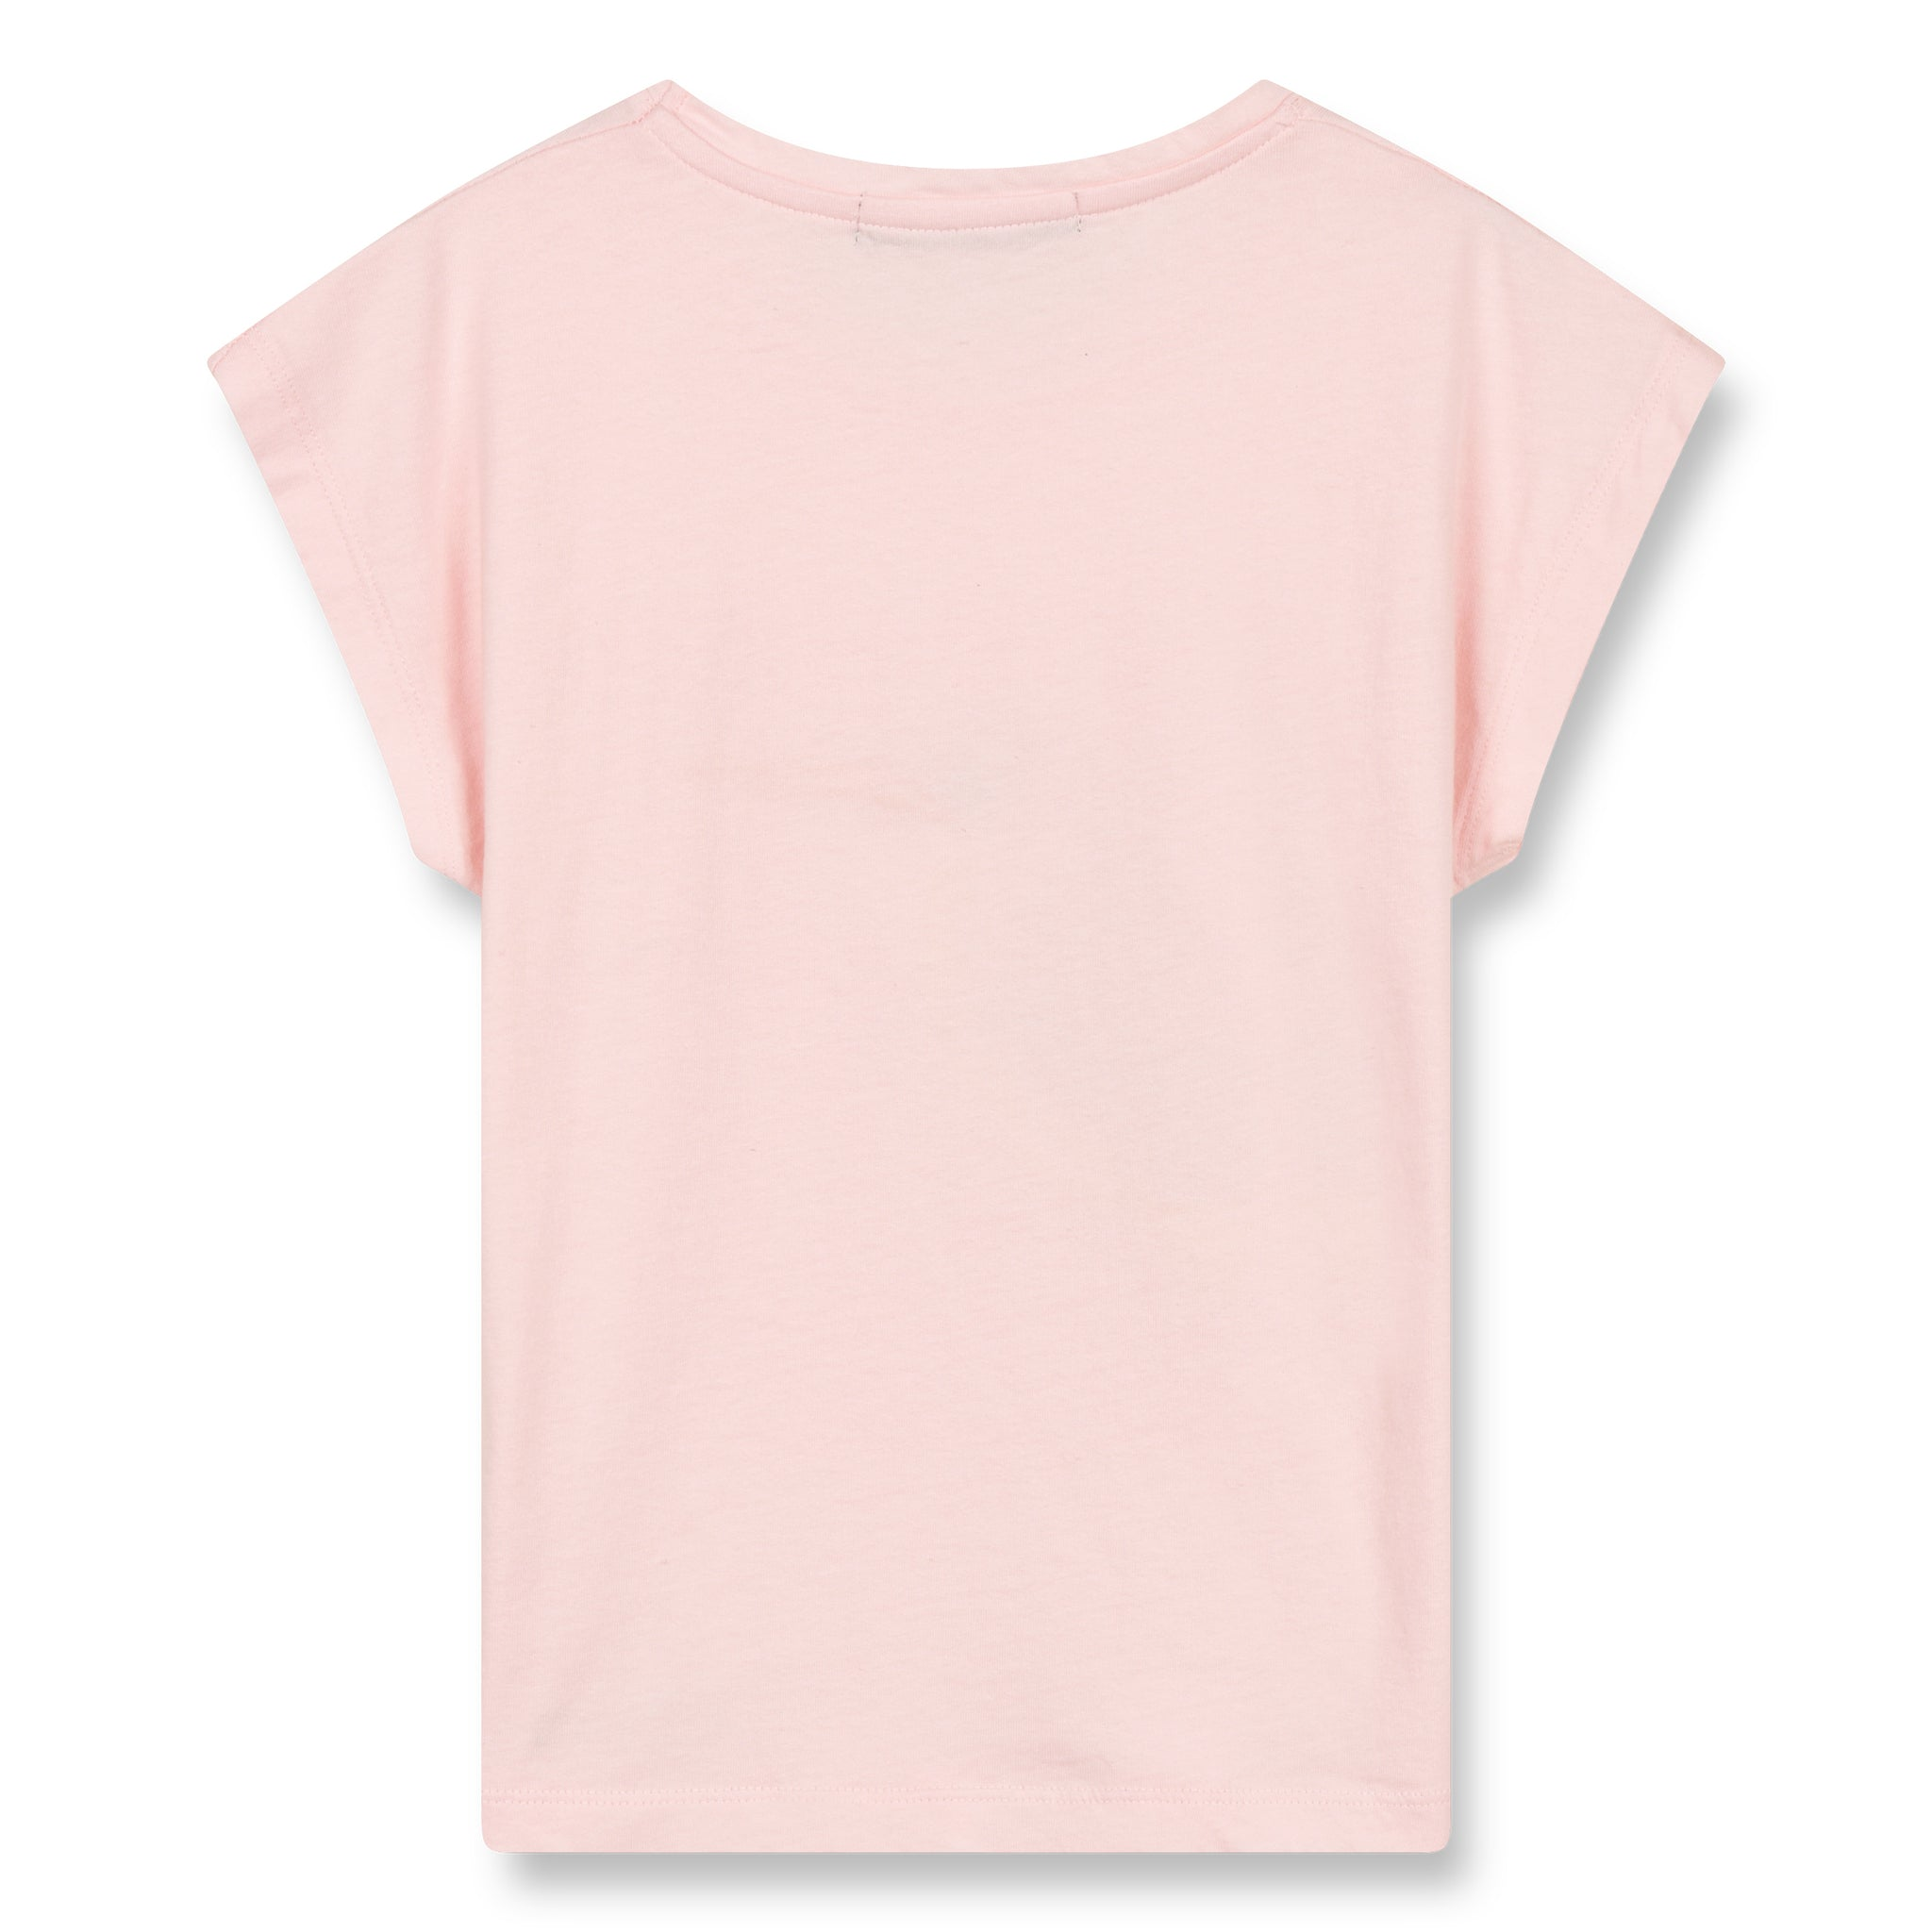 MARSH Vegas Pink Hummingbird - Sleeveless T-Shirt 2